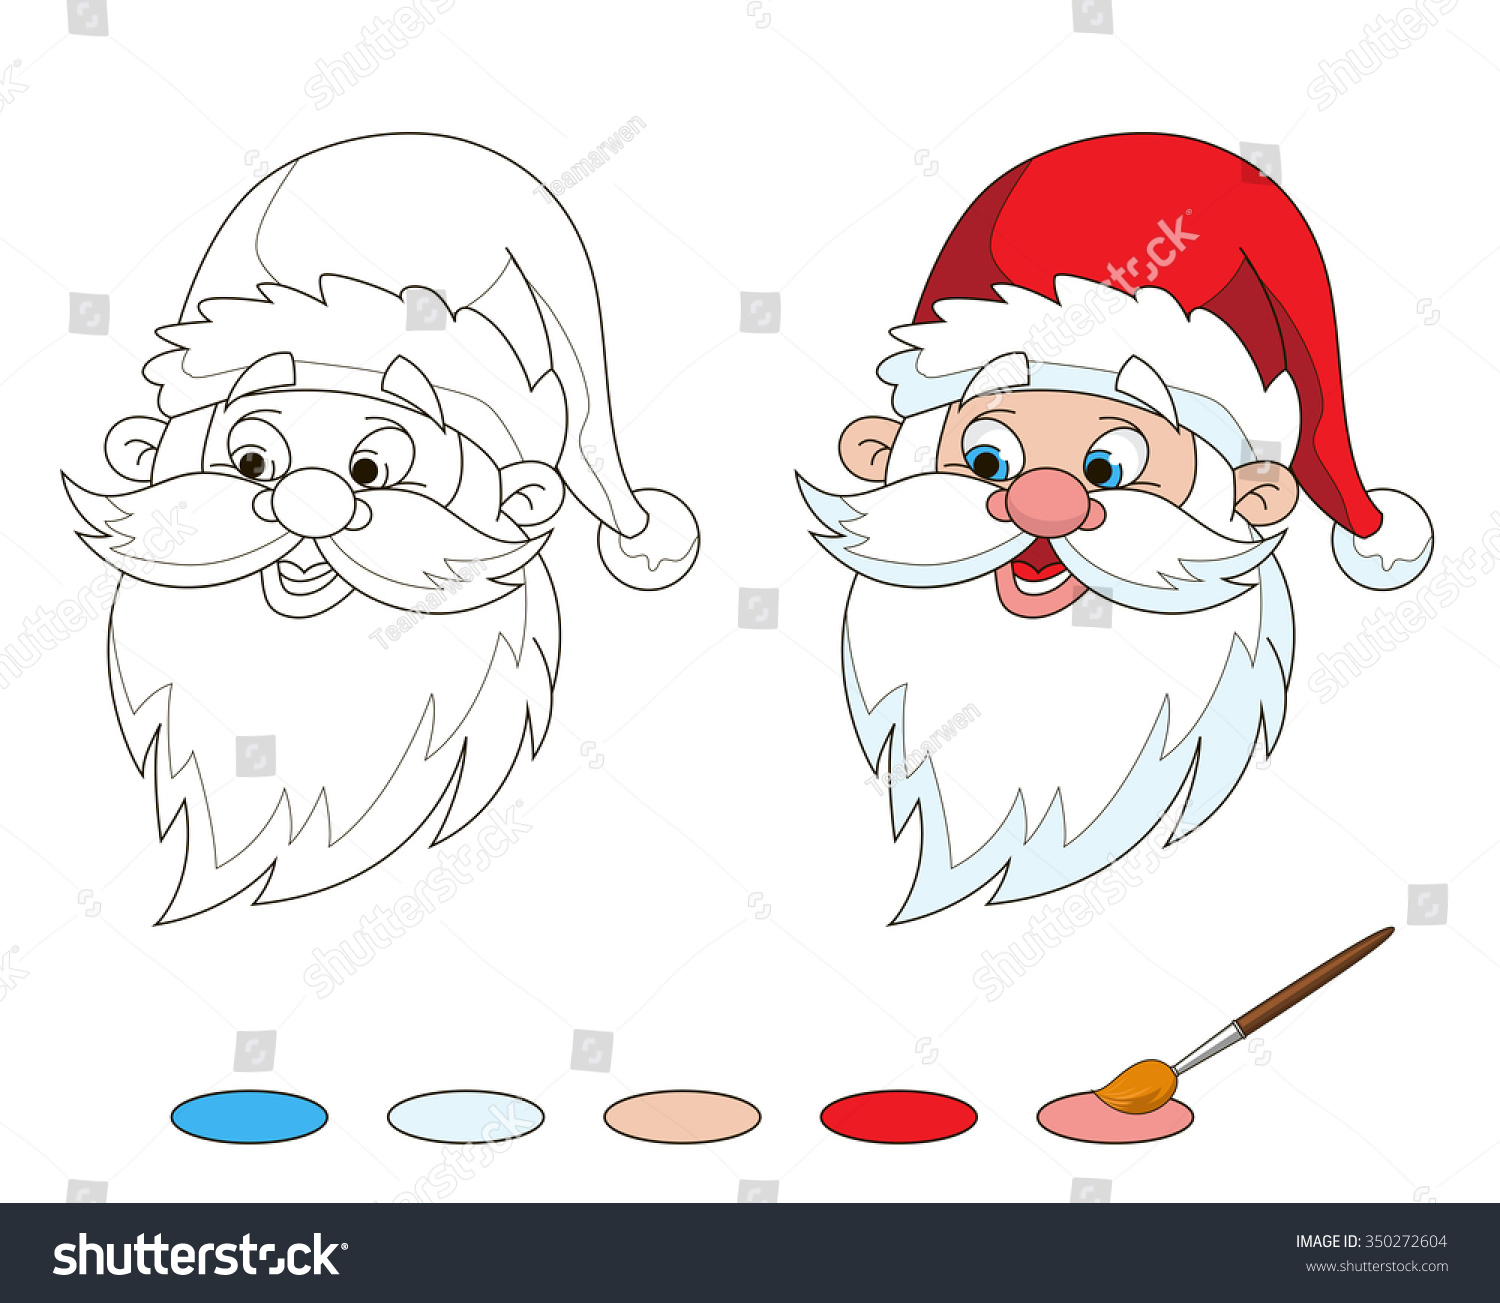 Santa Beard Coloring With Santas Head Page Stock Vector Royalty Free 350272604